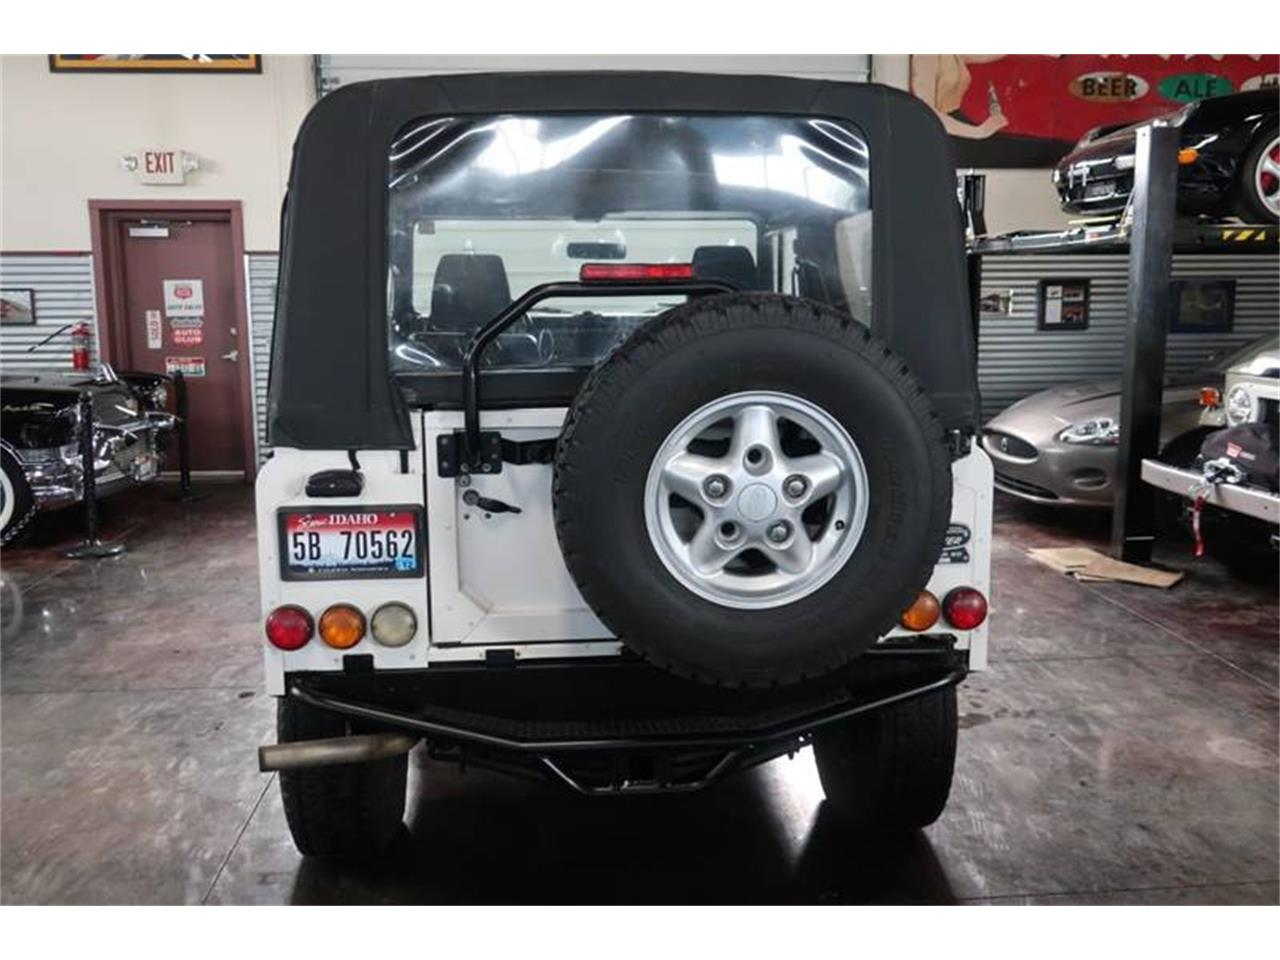 1995 Land Rover Defender for sale in Hailey, ID – photo 13